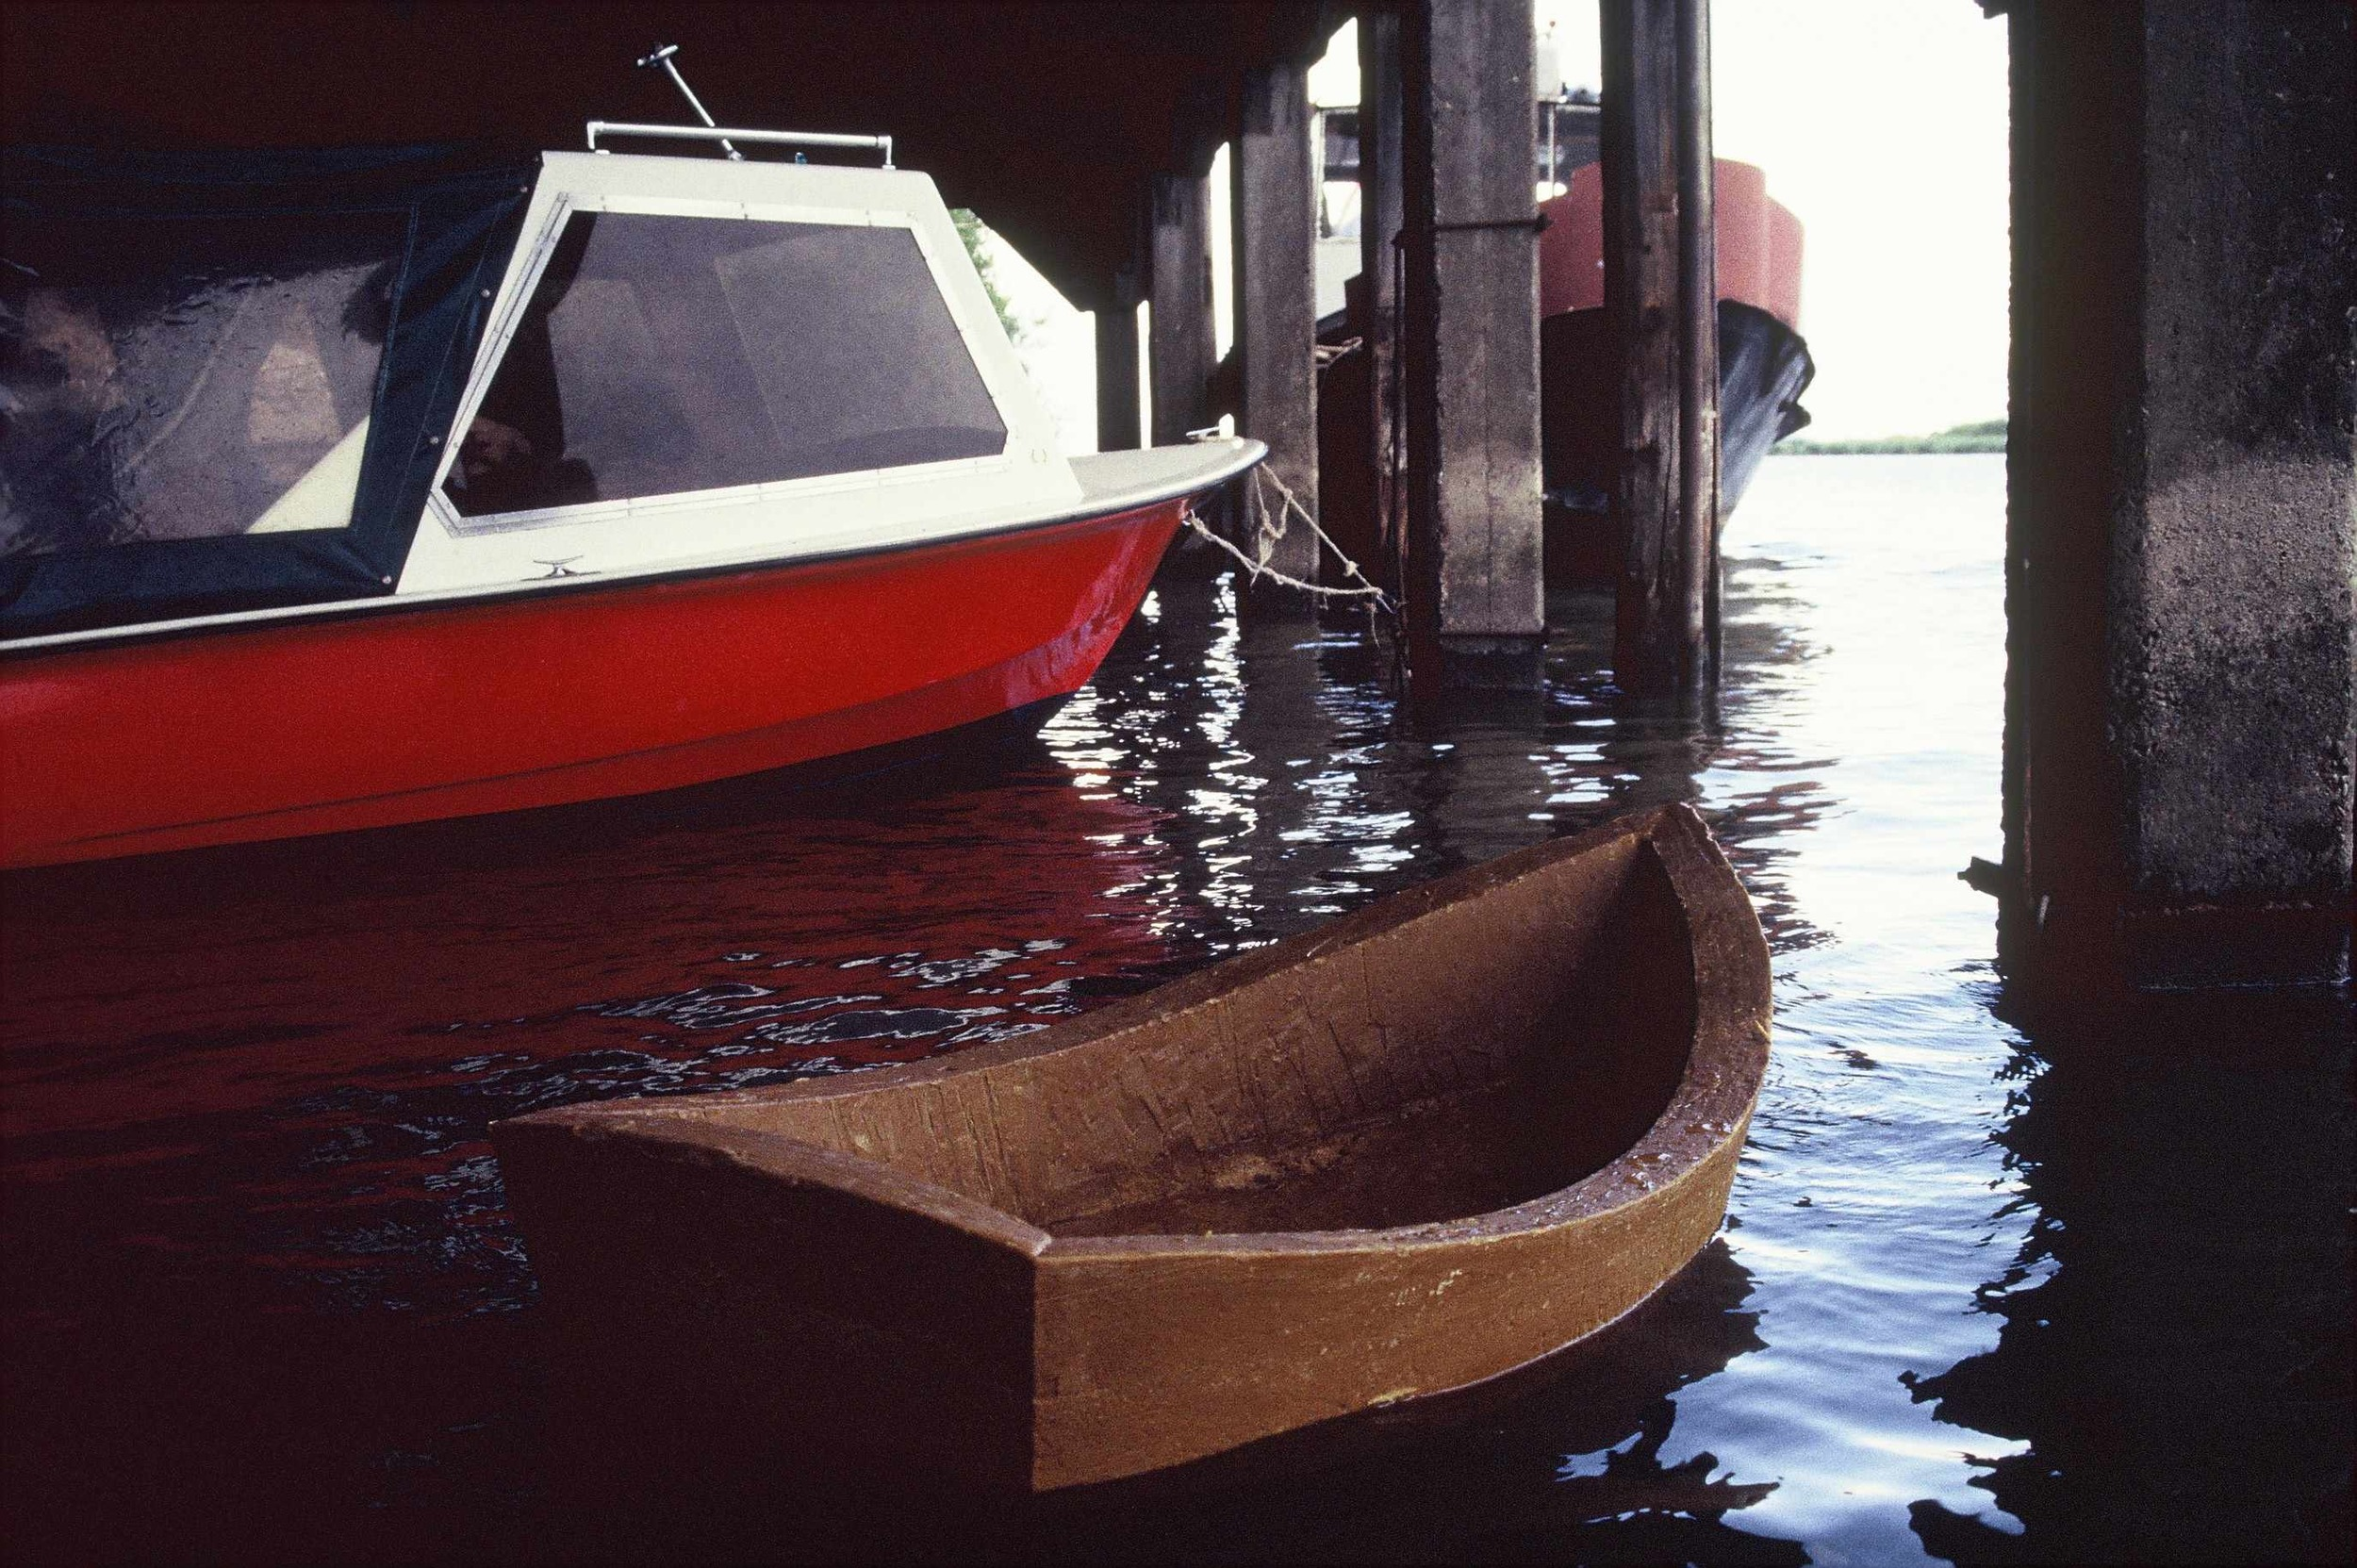 Boat, beeswax